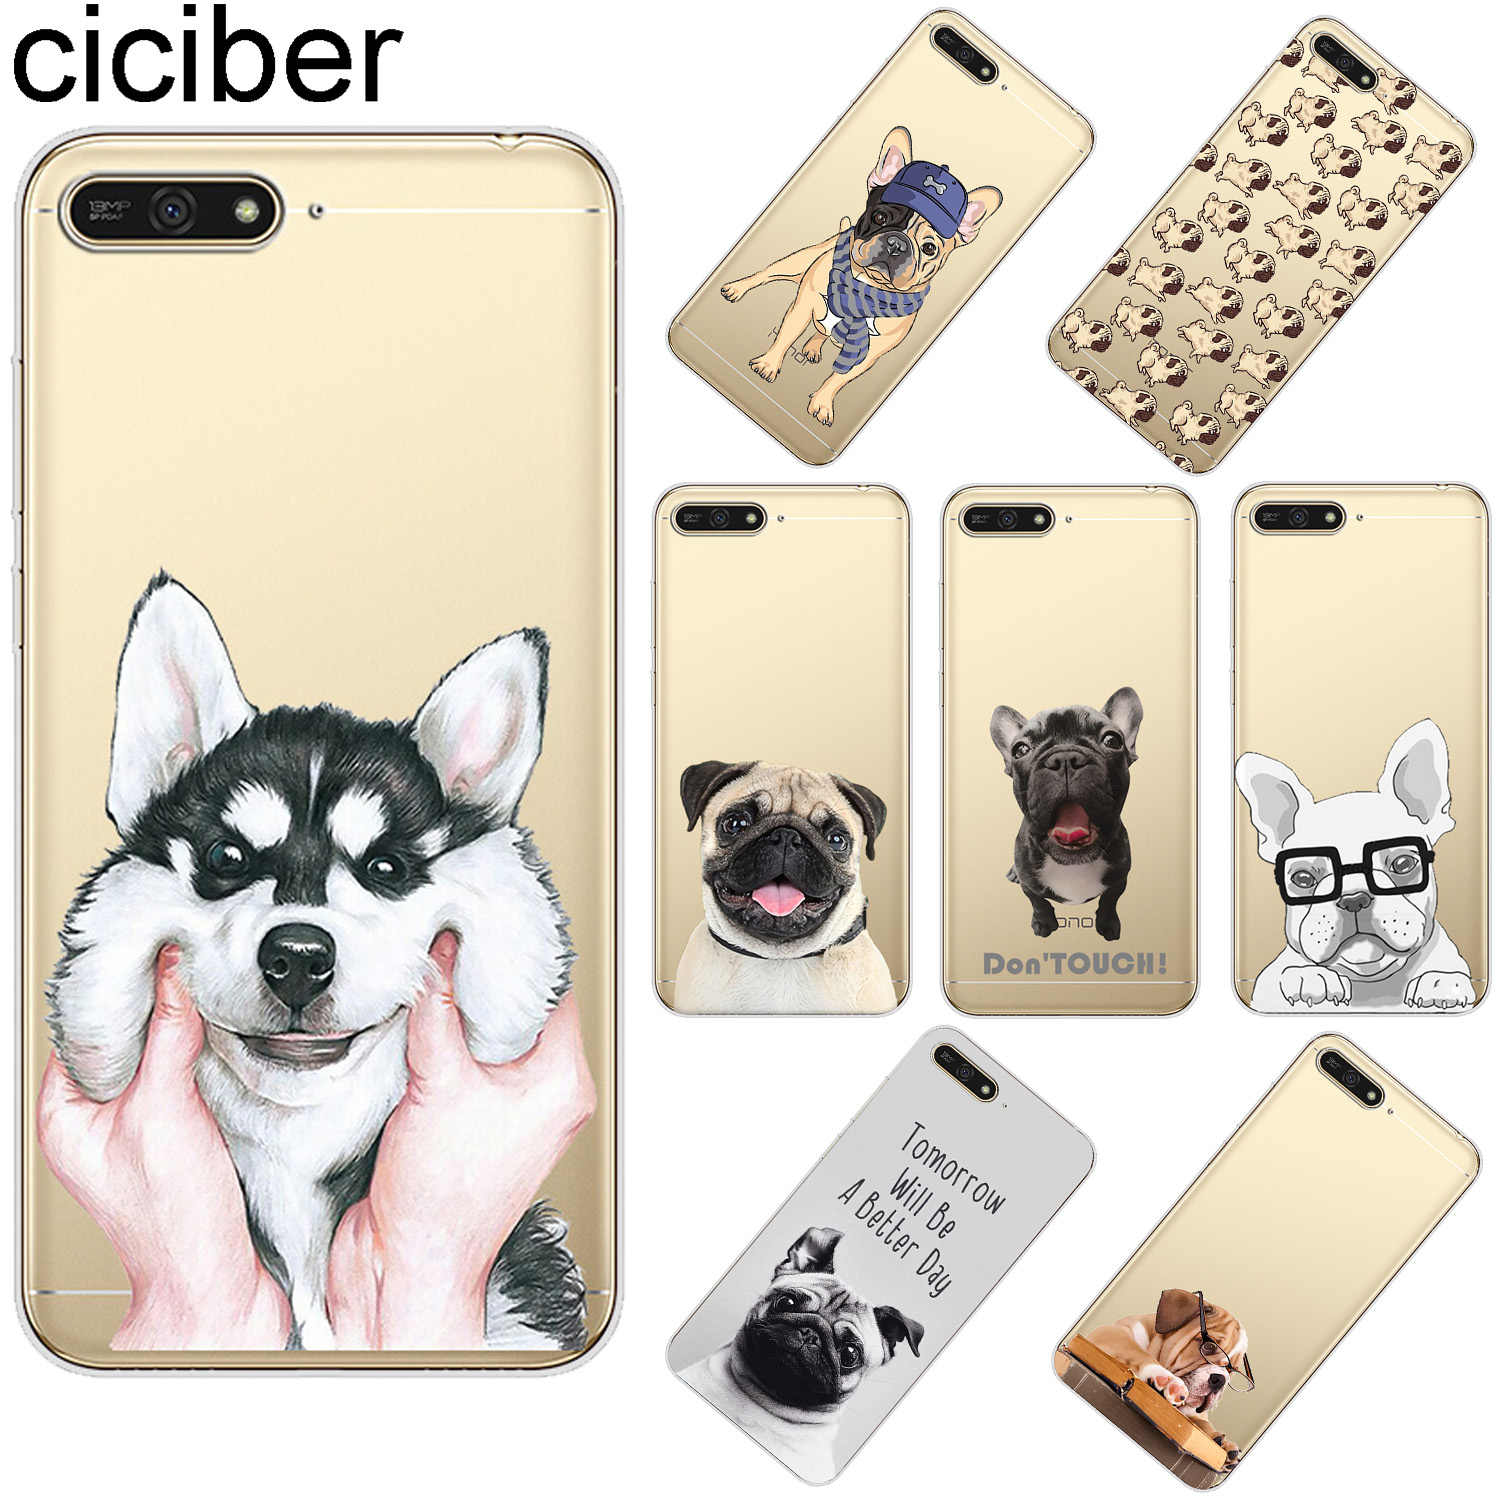 ciciber For Huawei Y9 Y7 Y6 Y5 Y3 Prime Pro 2019 2018 2017 Clear Soft Silicone TPU Phone Cases Cute Funny Pug Dog Fundas Coque